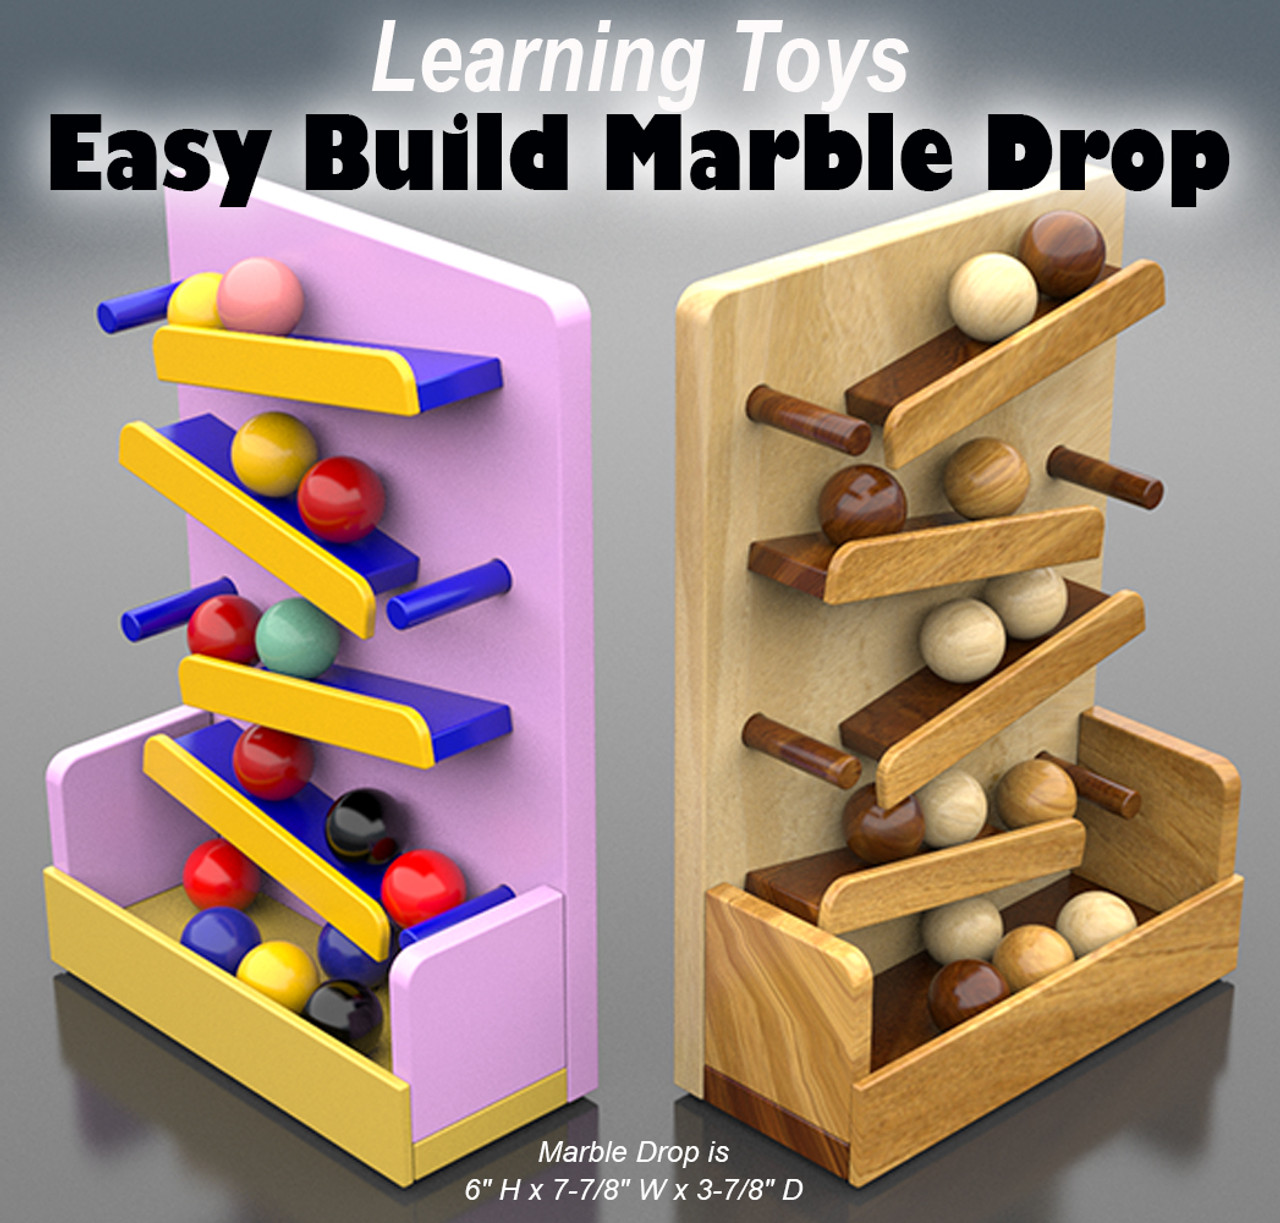 quick & easy wood marble drop wood toy plans (pdf download)